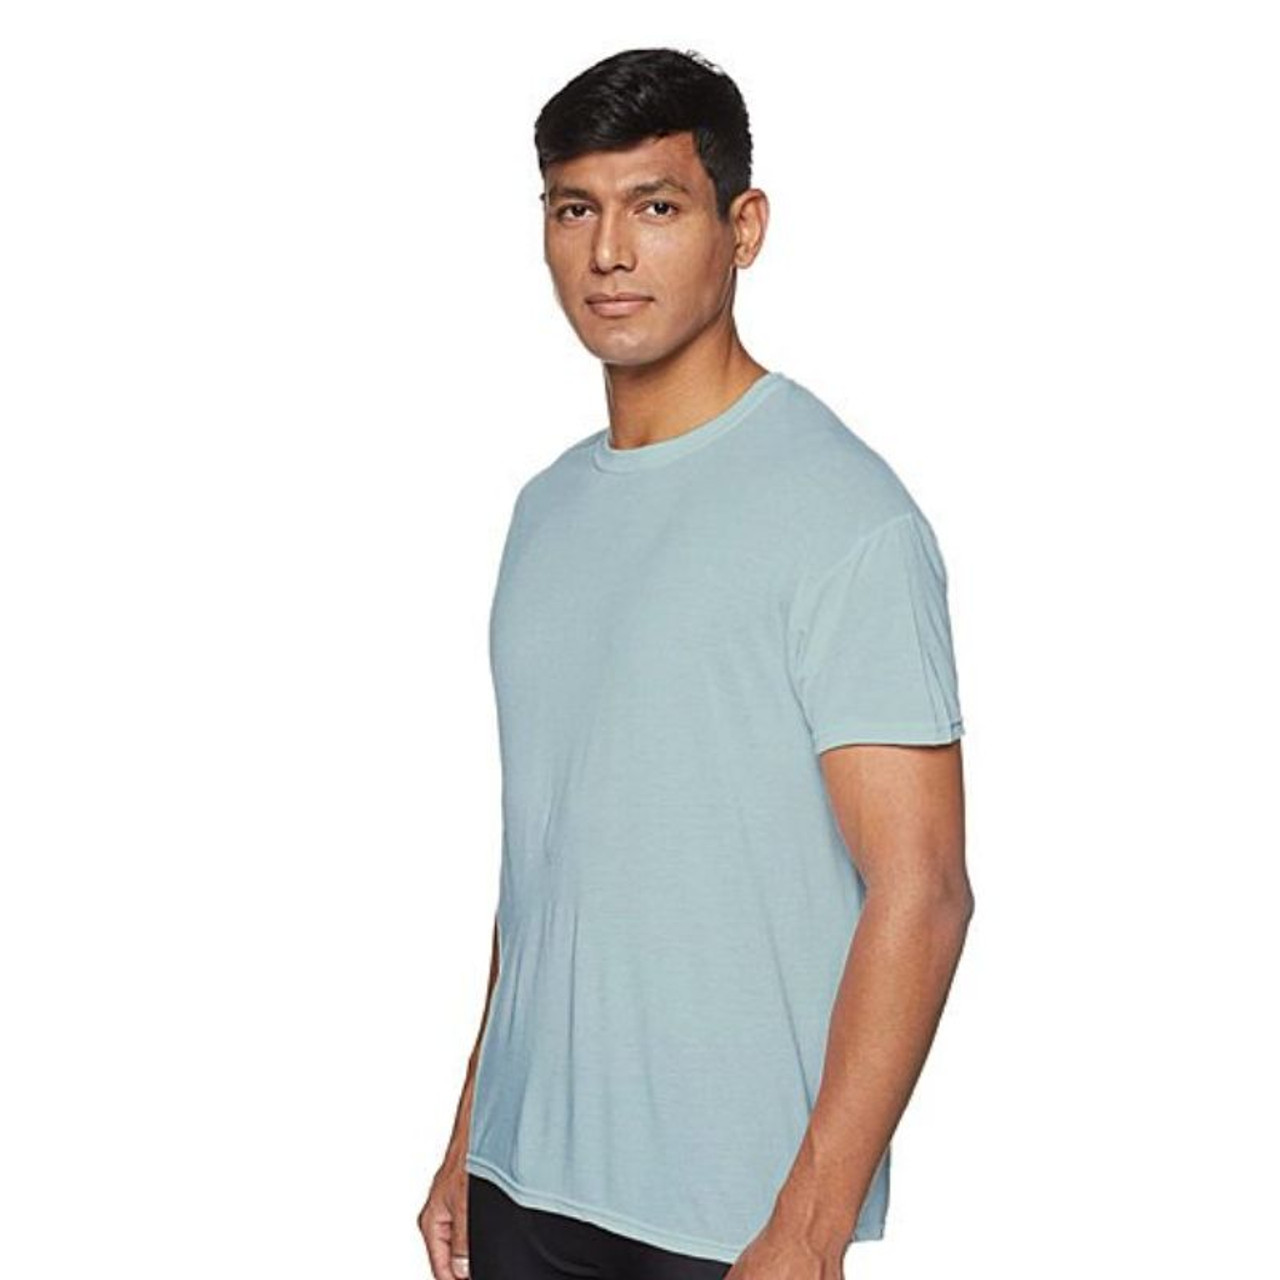 Men's Laviva Active Moisture Wicking Dry Fit Crew Neck Shirts - 5 Pack